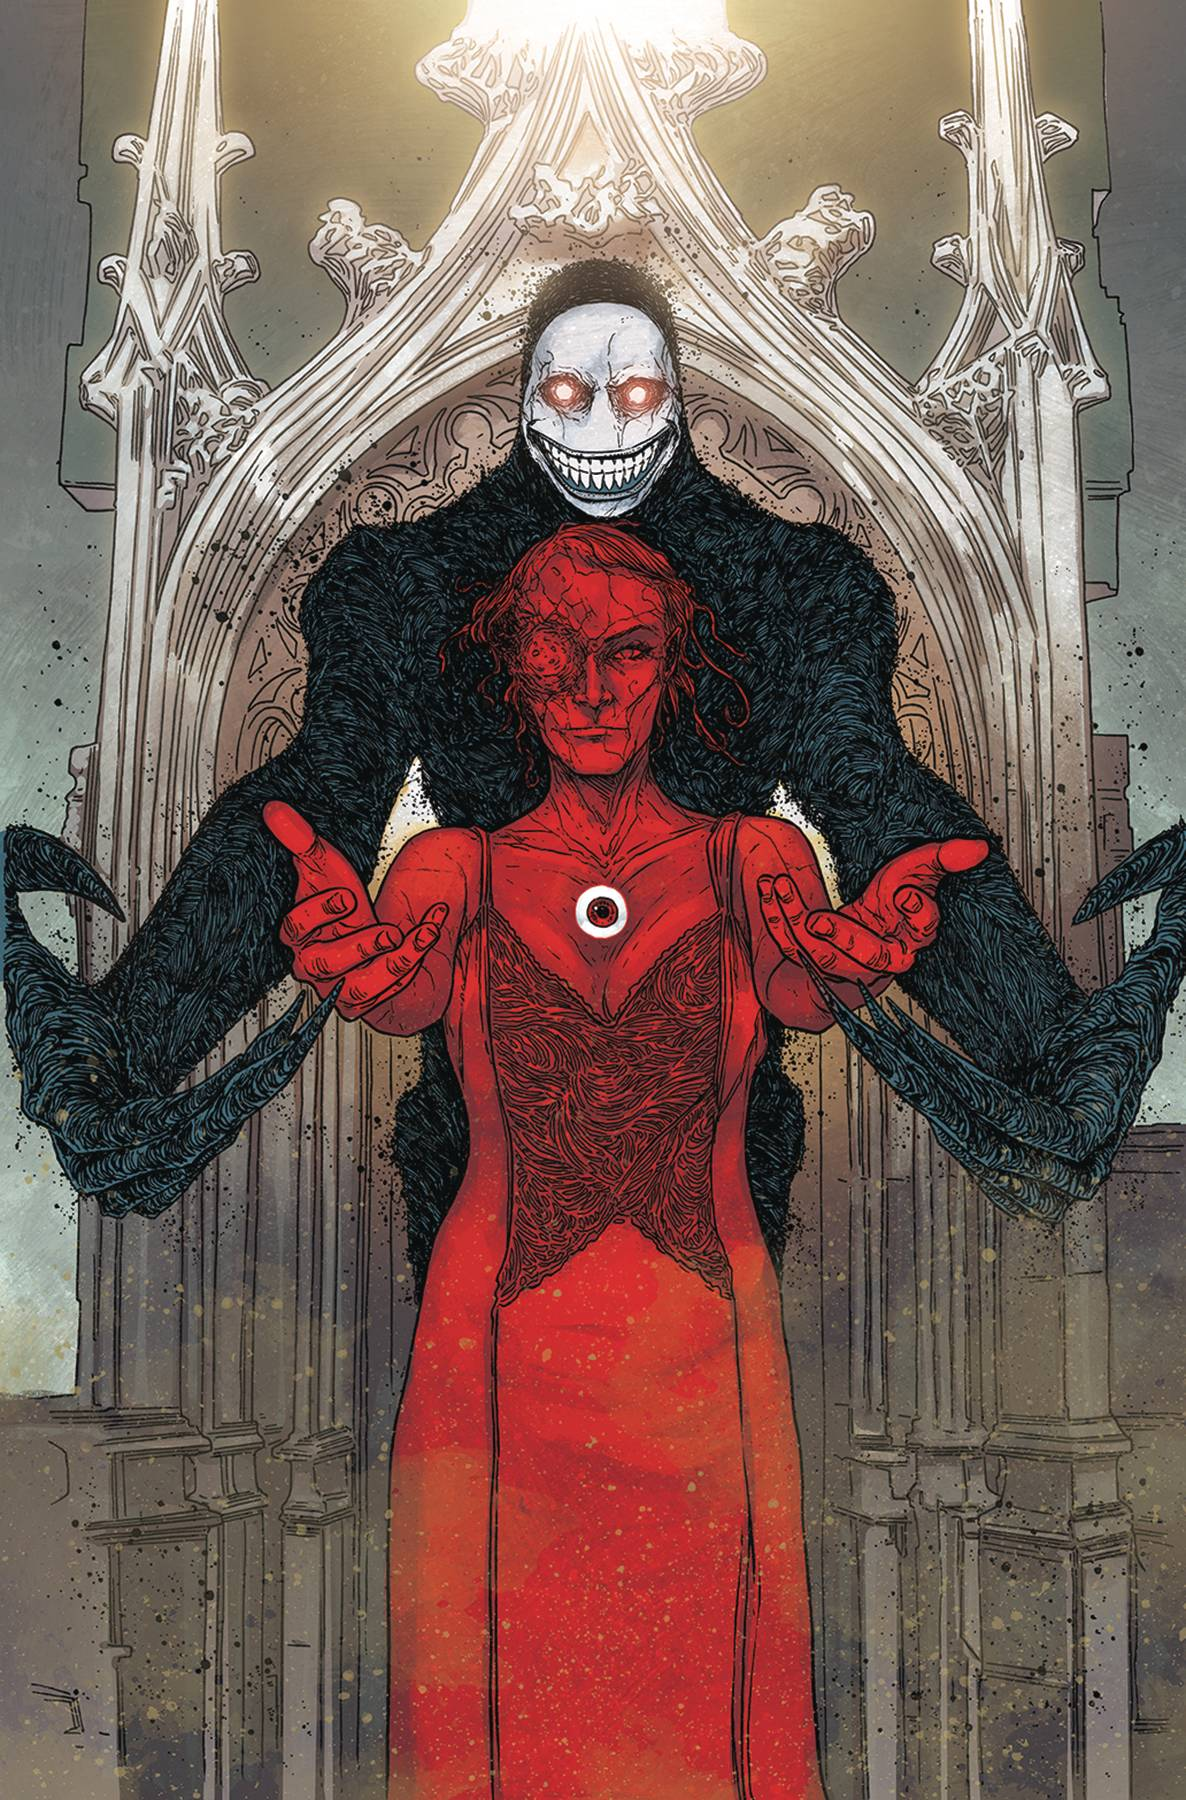 04/15/2020 RED MOTHER #5 (NEW RELEASE DATE 06/03/2020)